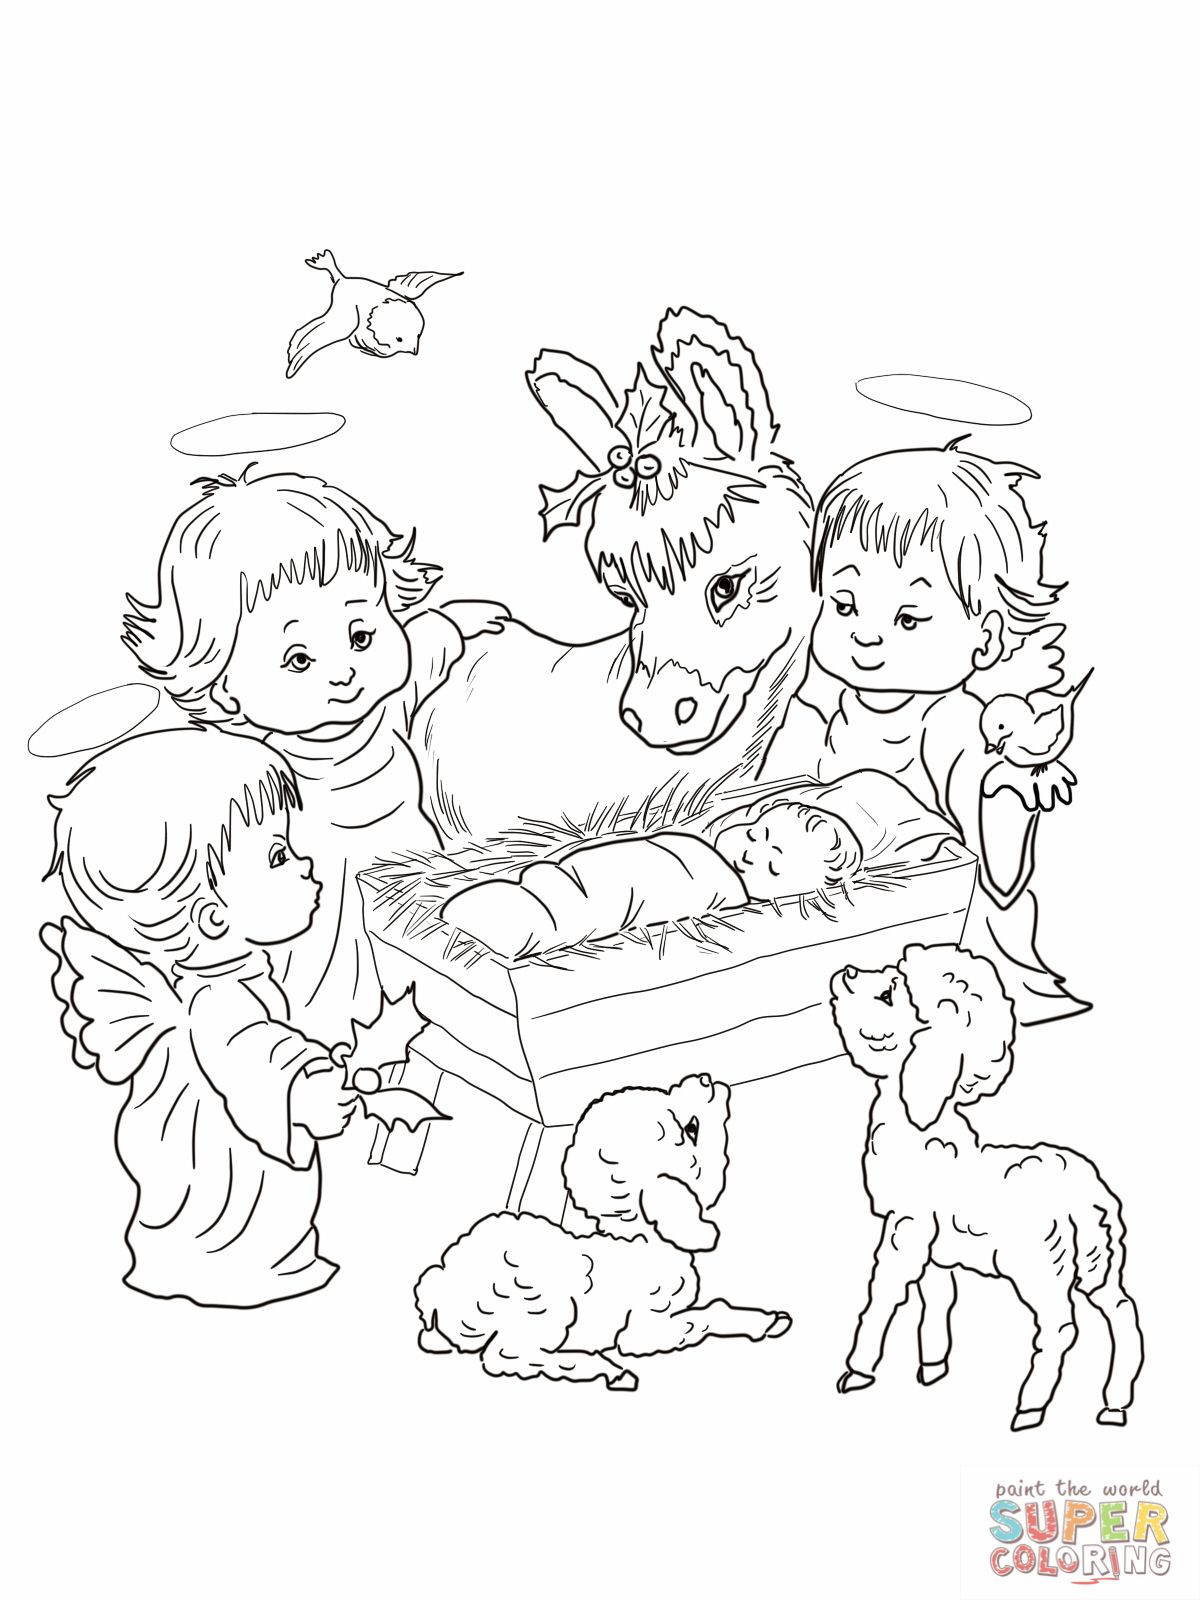 Colouring sheets nativity scene - Coloring Pictures Of Nativity Scene Yahoo Search Results